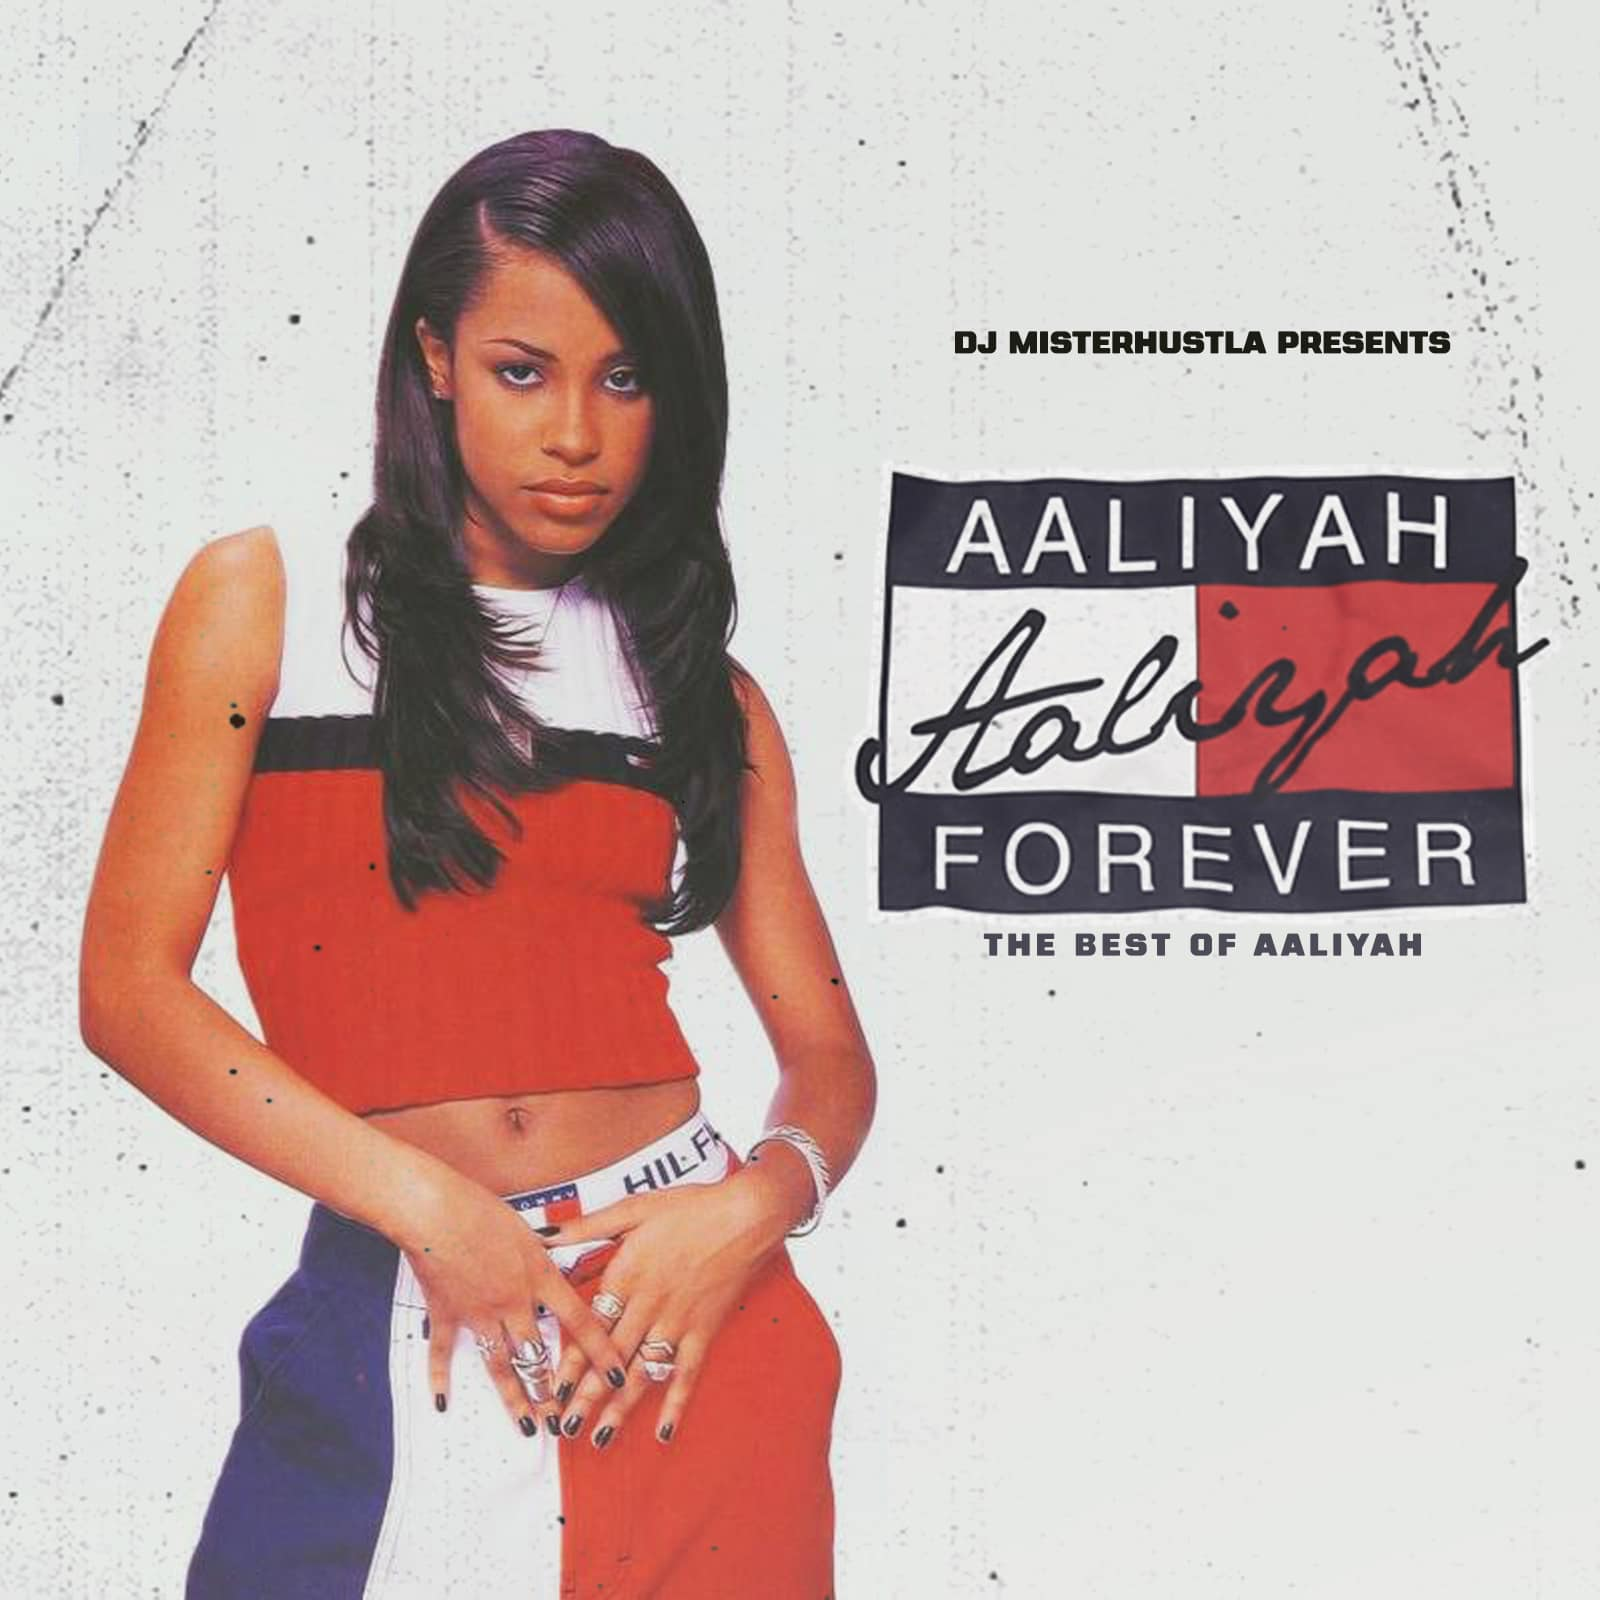 Aaliyah Forever